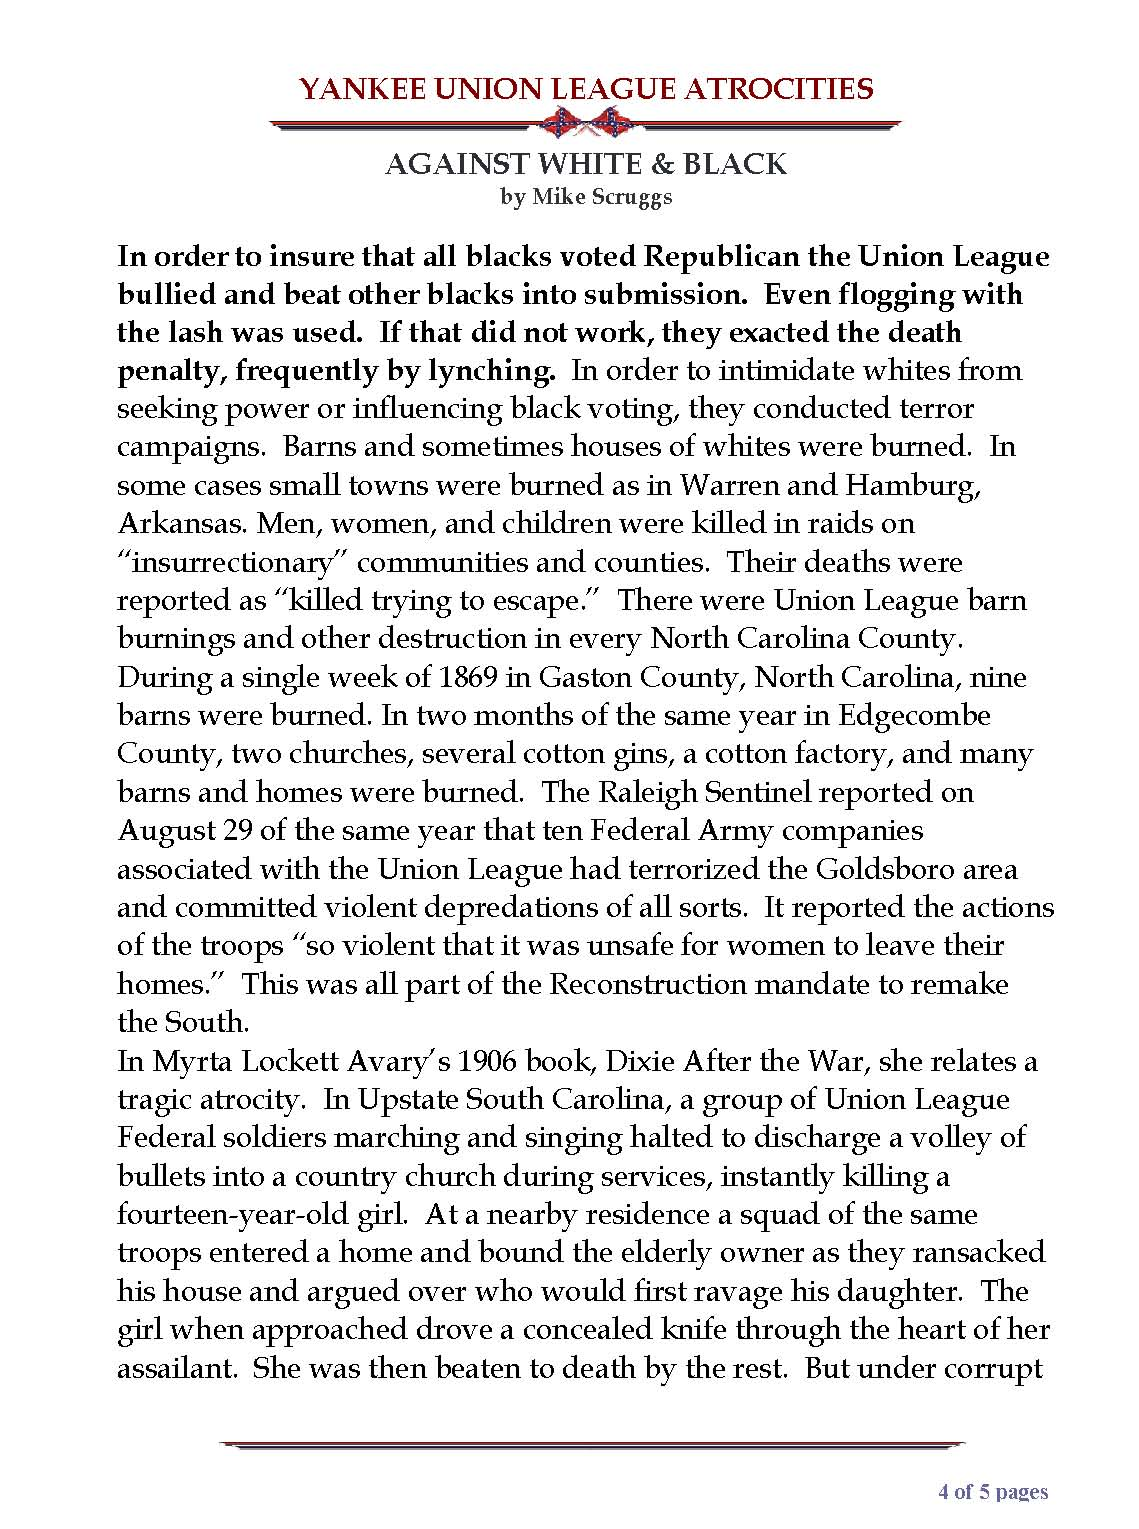 YANKEE UNION LEAGUE ATROCITIES AGAINST WHITE and BLACK_Page_4